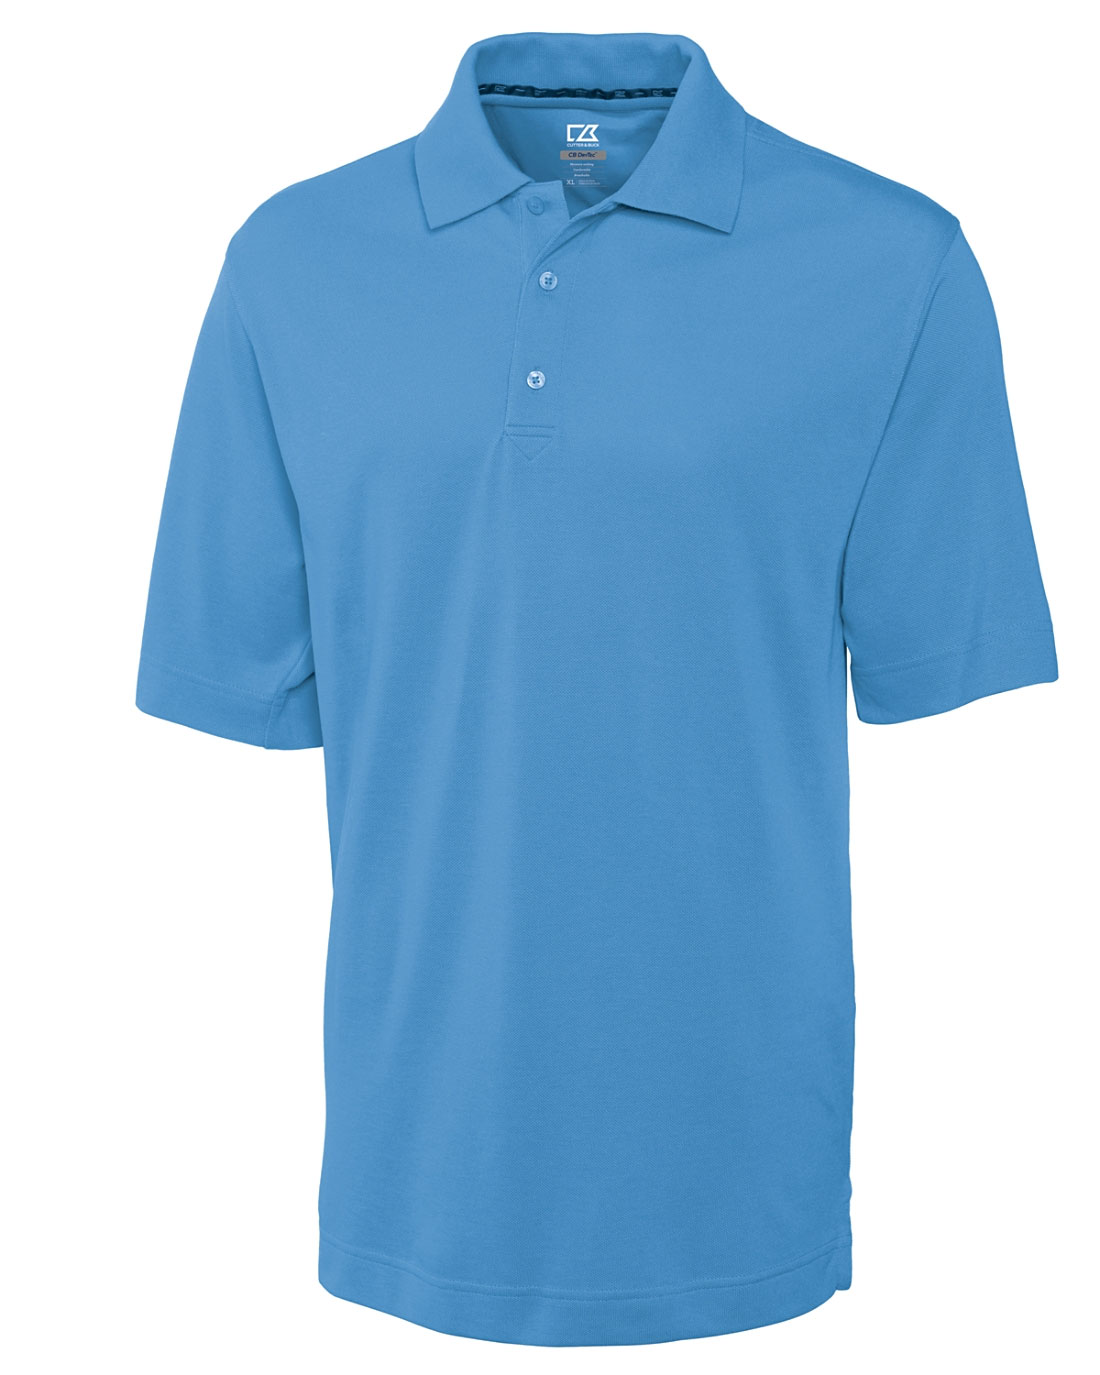 CB DryTec� Championship Polo for Men Big and Tall